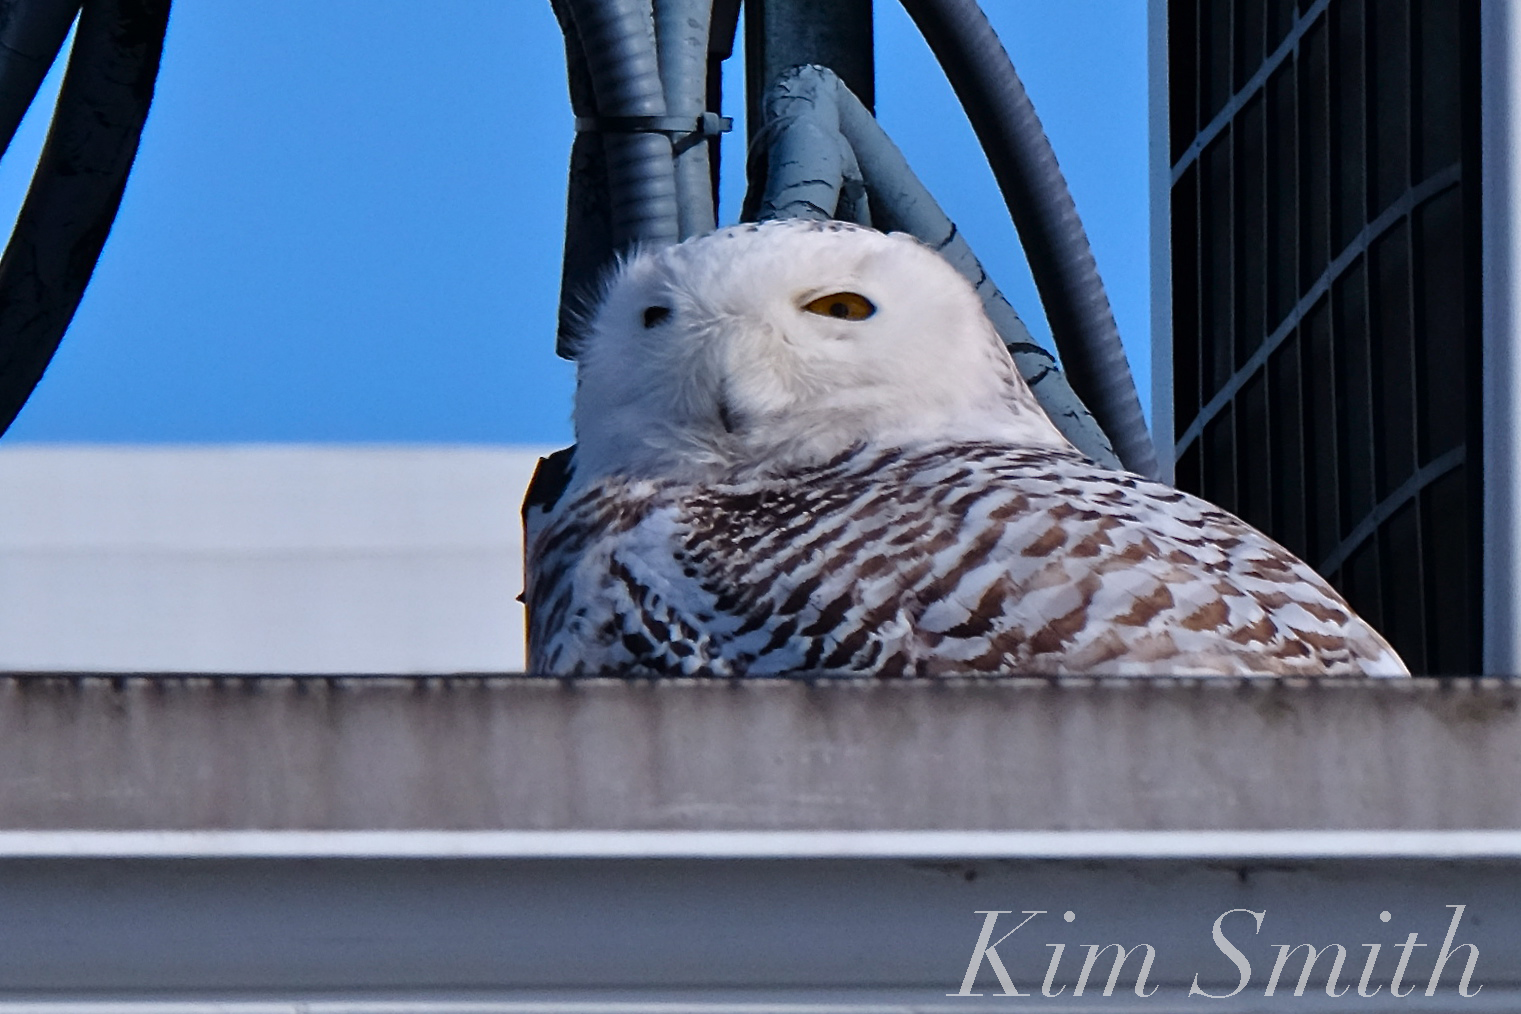 Snowy owl hedwig survies march noreaster riley by kim smith our beautiful snowy owl hedwig survived and looks none the worse for wear she spent the afternoon of march 5th resting in a sunny but wholly unphotogenic biocorpaavc Choice Image